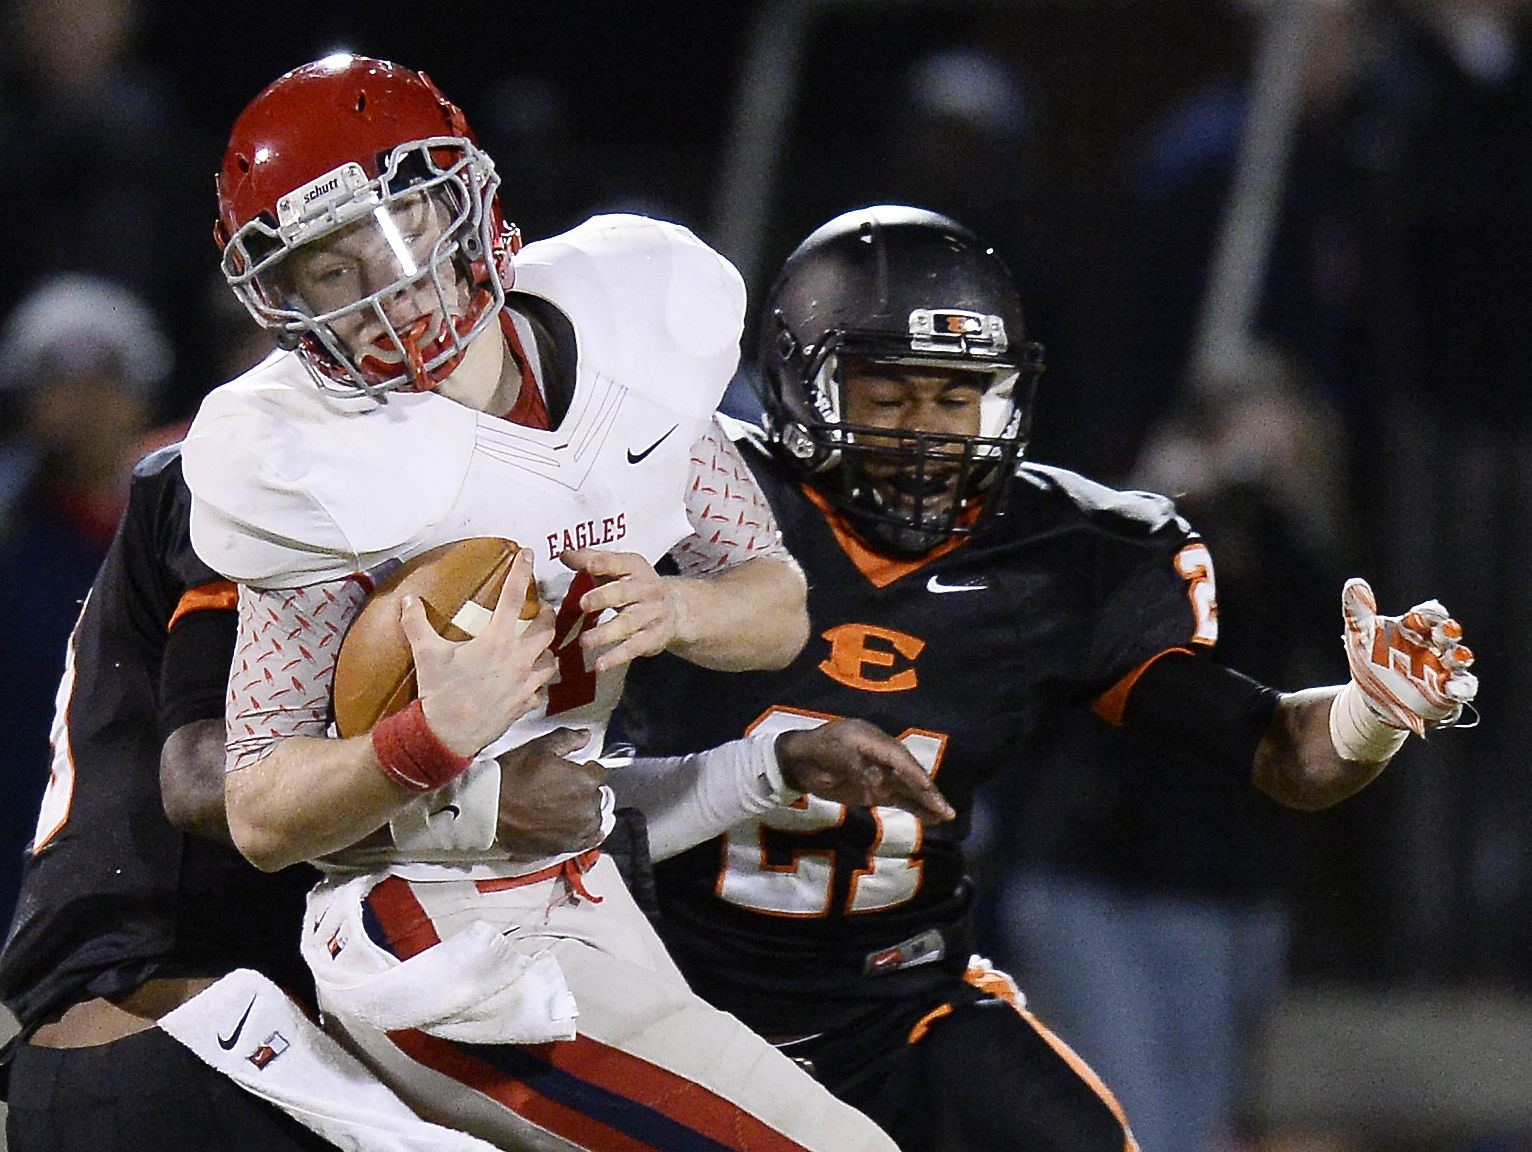 Brentwood Academy quarterback Jeremiah Oatsvall (4) tries to get past Ensworth defensive back P.J. Settles. left, and cornerback Donovan Sheffield (21) during the fourth quarter at Ensworth High School on Friday, October 31, 2014, in Nashville, Tenn.